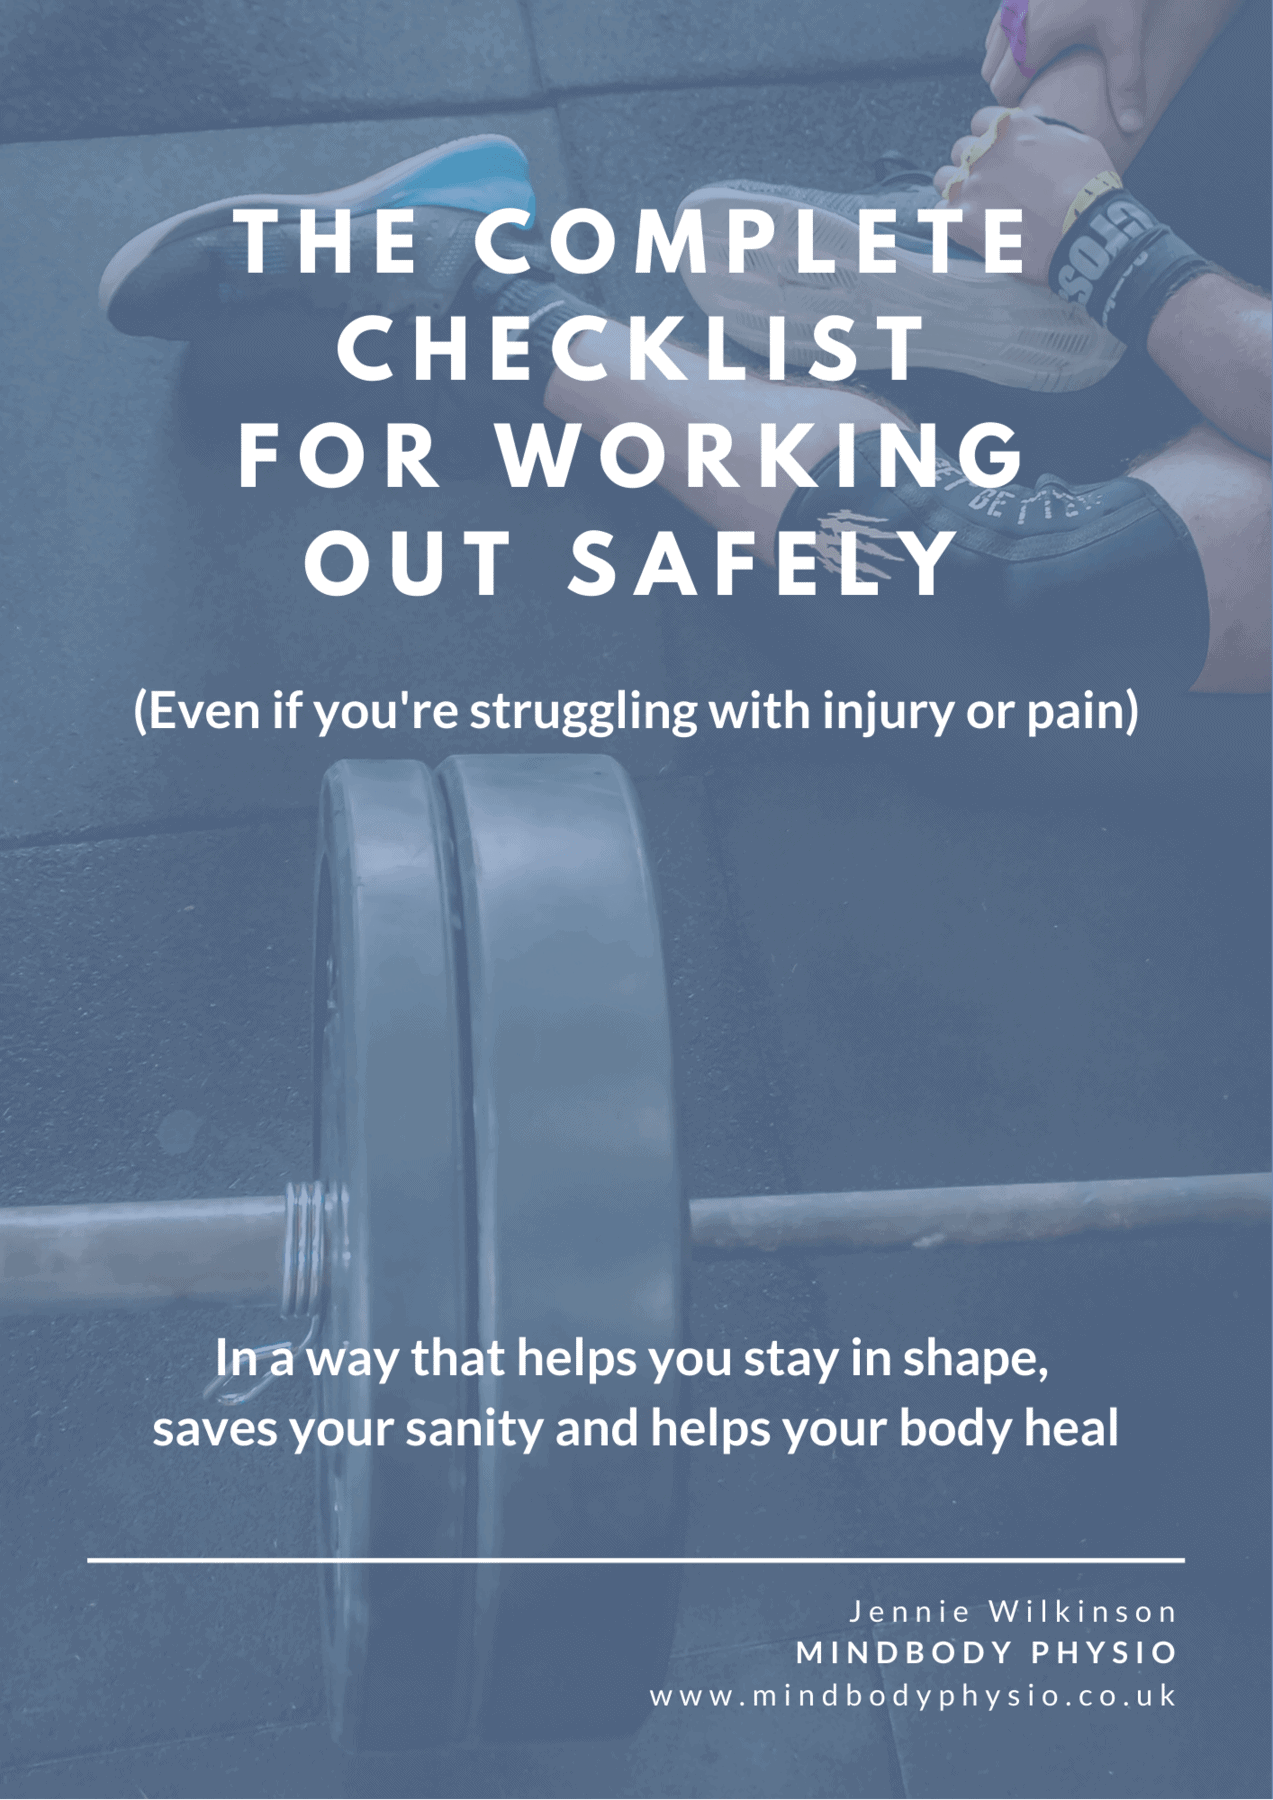 The Complete Checklist for Working Out Safely Free Download Image